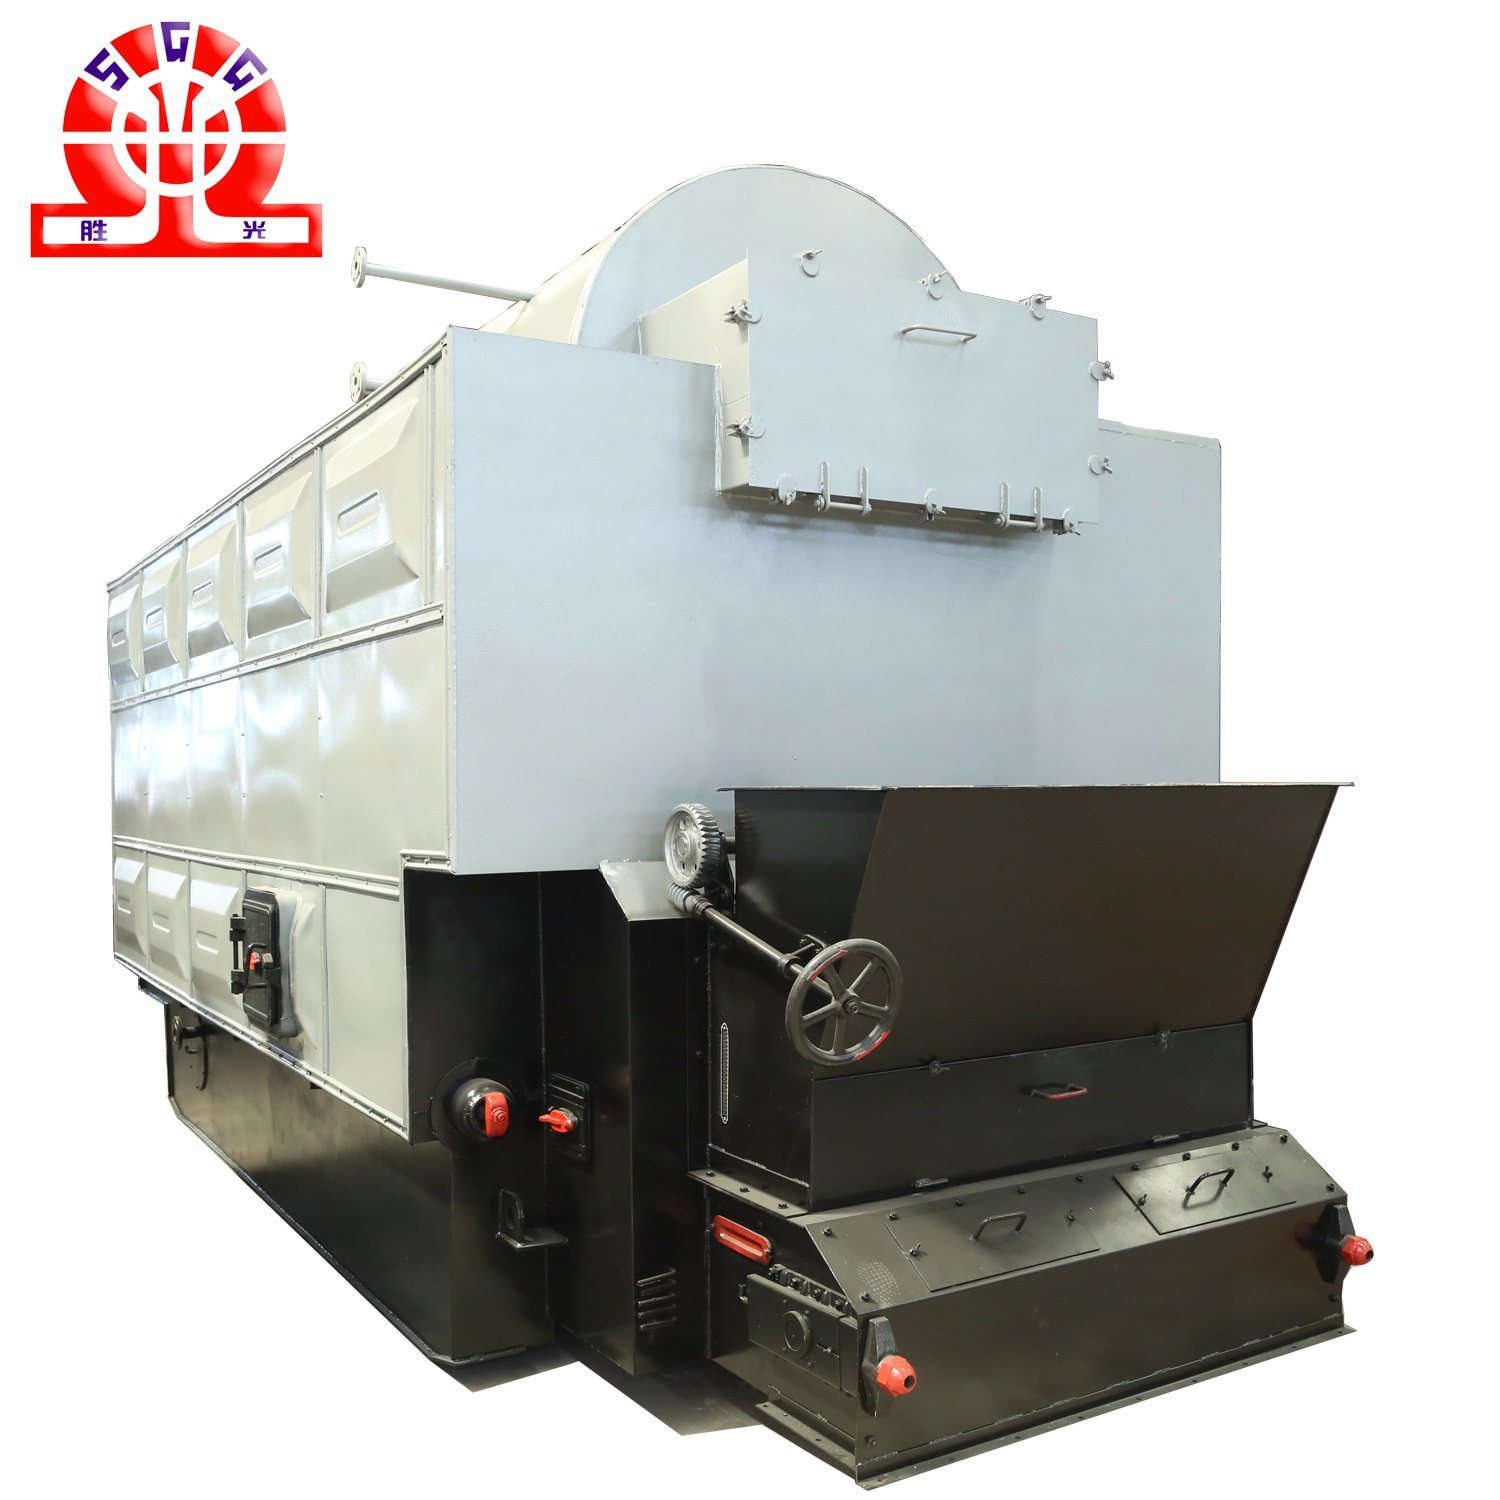 China 15 T/H Industrial Burning Biomass Fired Steam Boiler - China ...